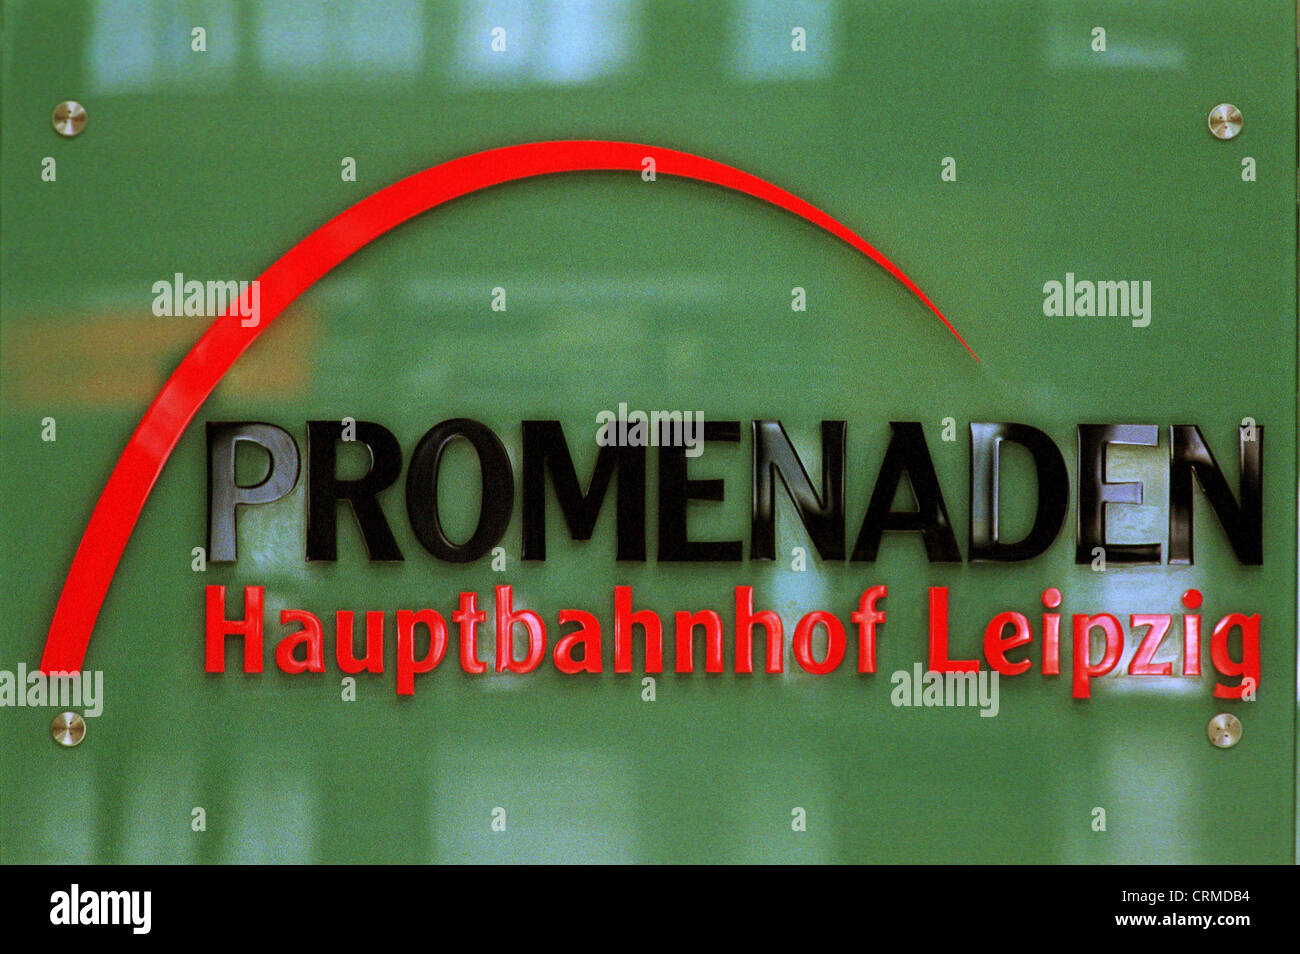 Logo of the promenades in Leipzig Hauptbahnhof - Stock Image